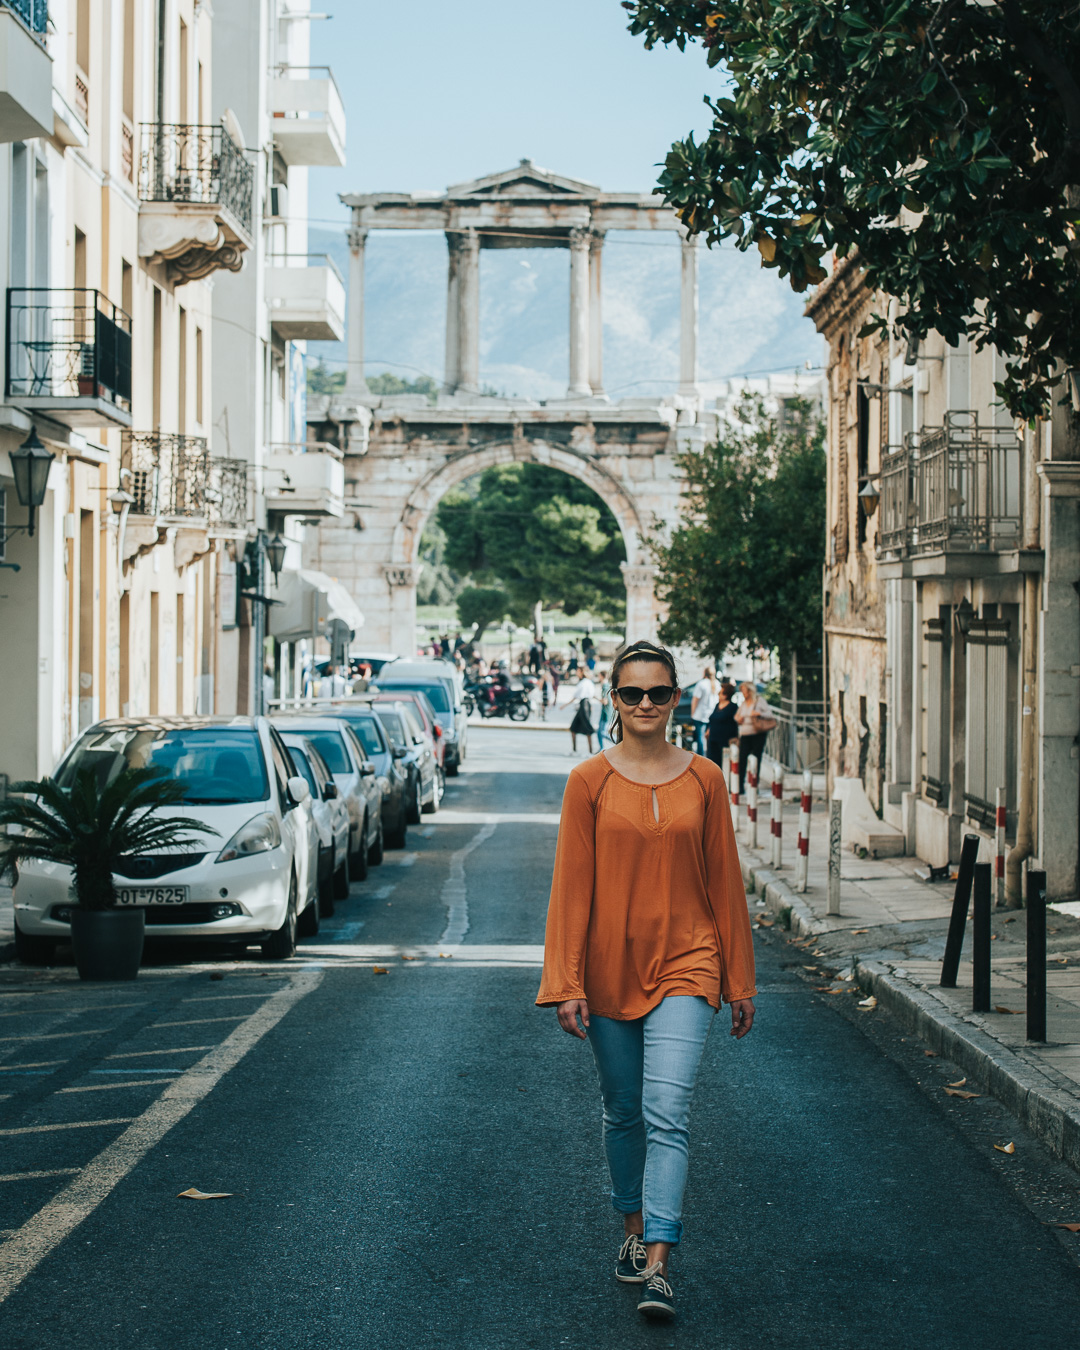 Hadrian Arch in Athens